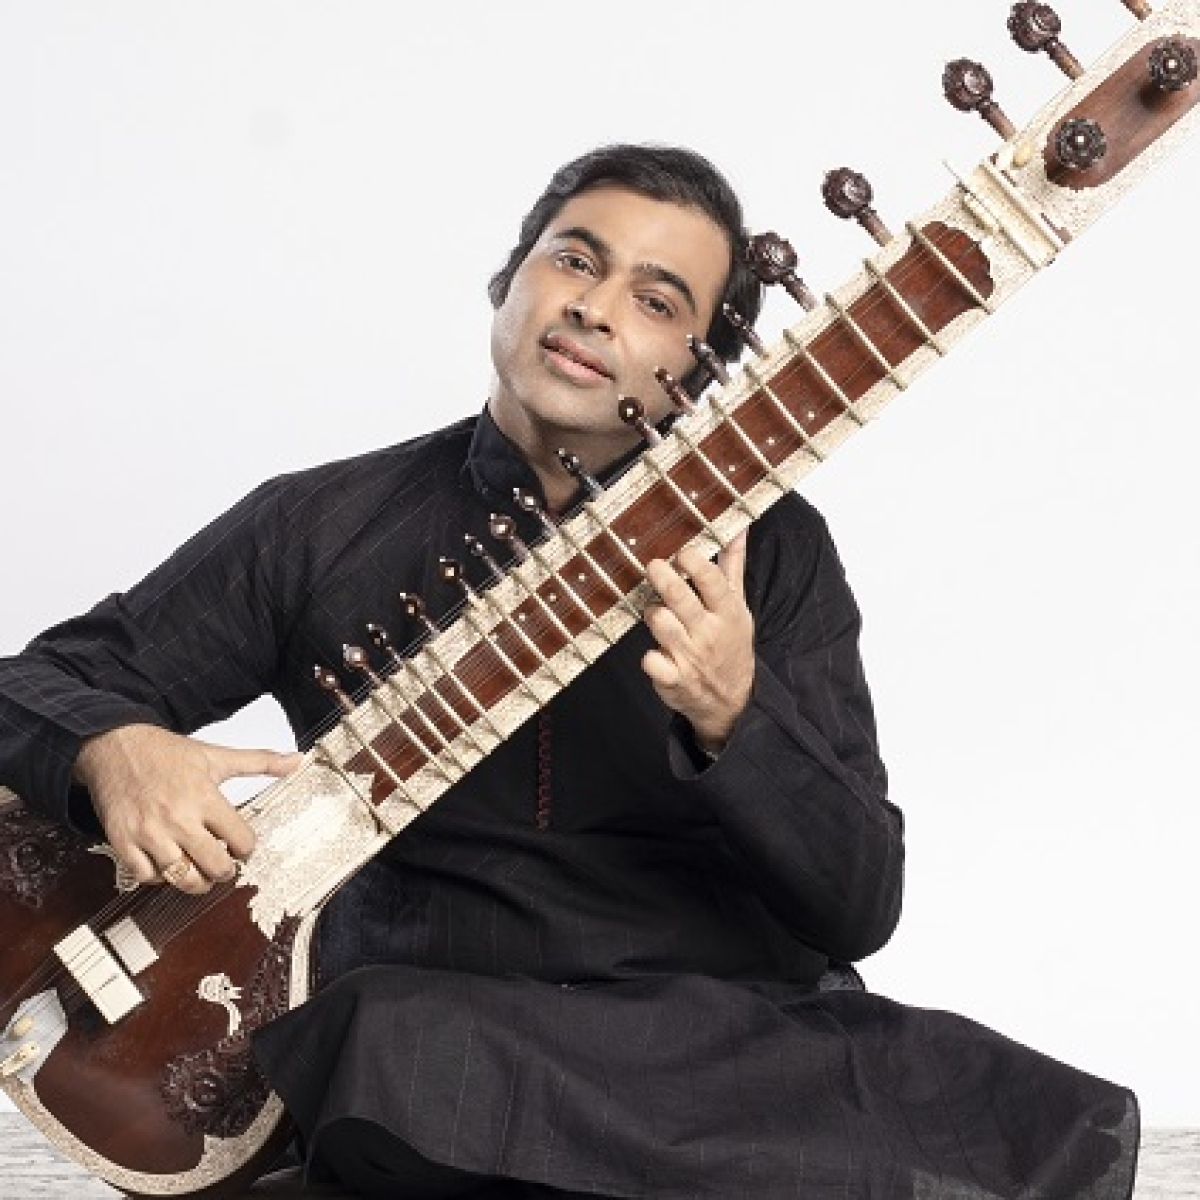 Santana's songs get 'smooth' treatment on Sitar, thanks to Purbayan Chatterjee